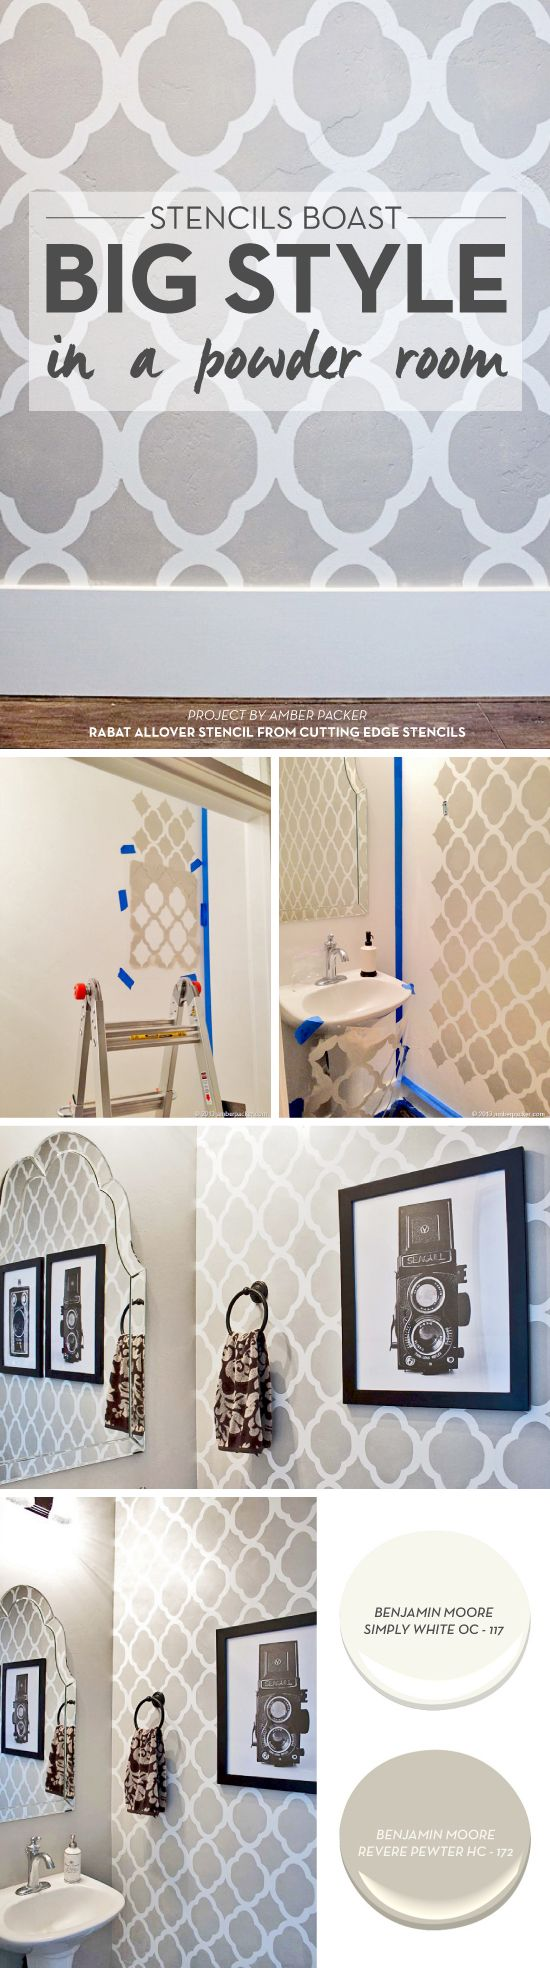 Cutting Edge Stencils shares a powder room makeover using the Rabat Allover Stencil in gray and white.  http://www.cuttingedgestencils.com/moroccan-stencil-pattern-3.html?utm_source=JCG&utm_medium=Pinterest%20Comment&utm_campaign=Rabat%20Allover%20Stencil%20